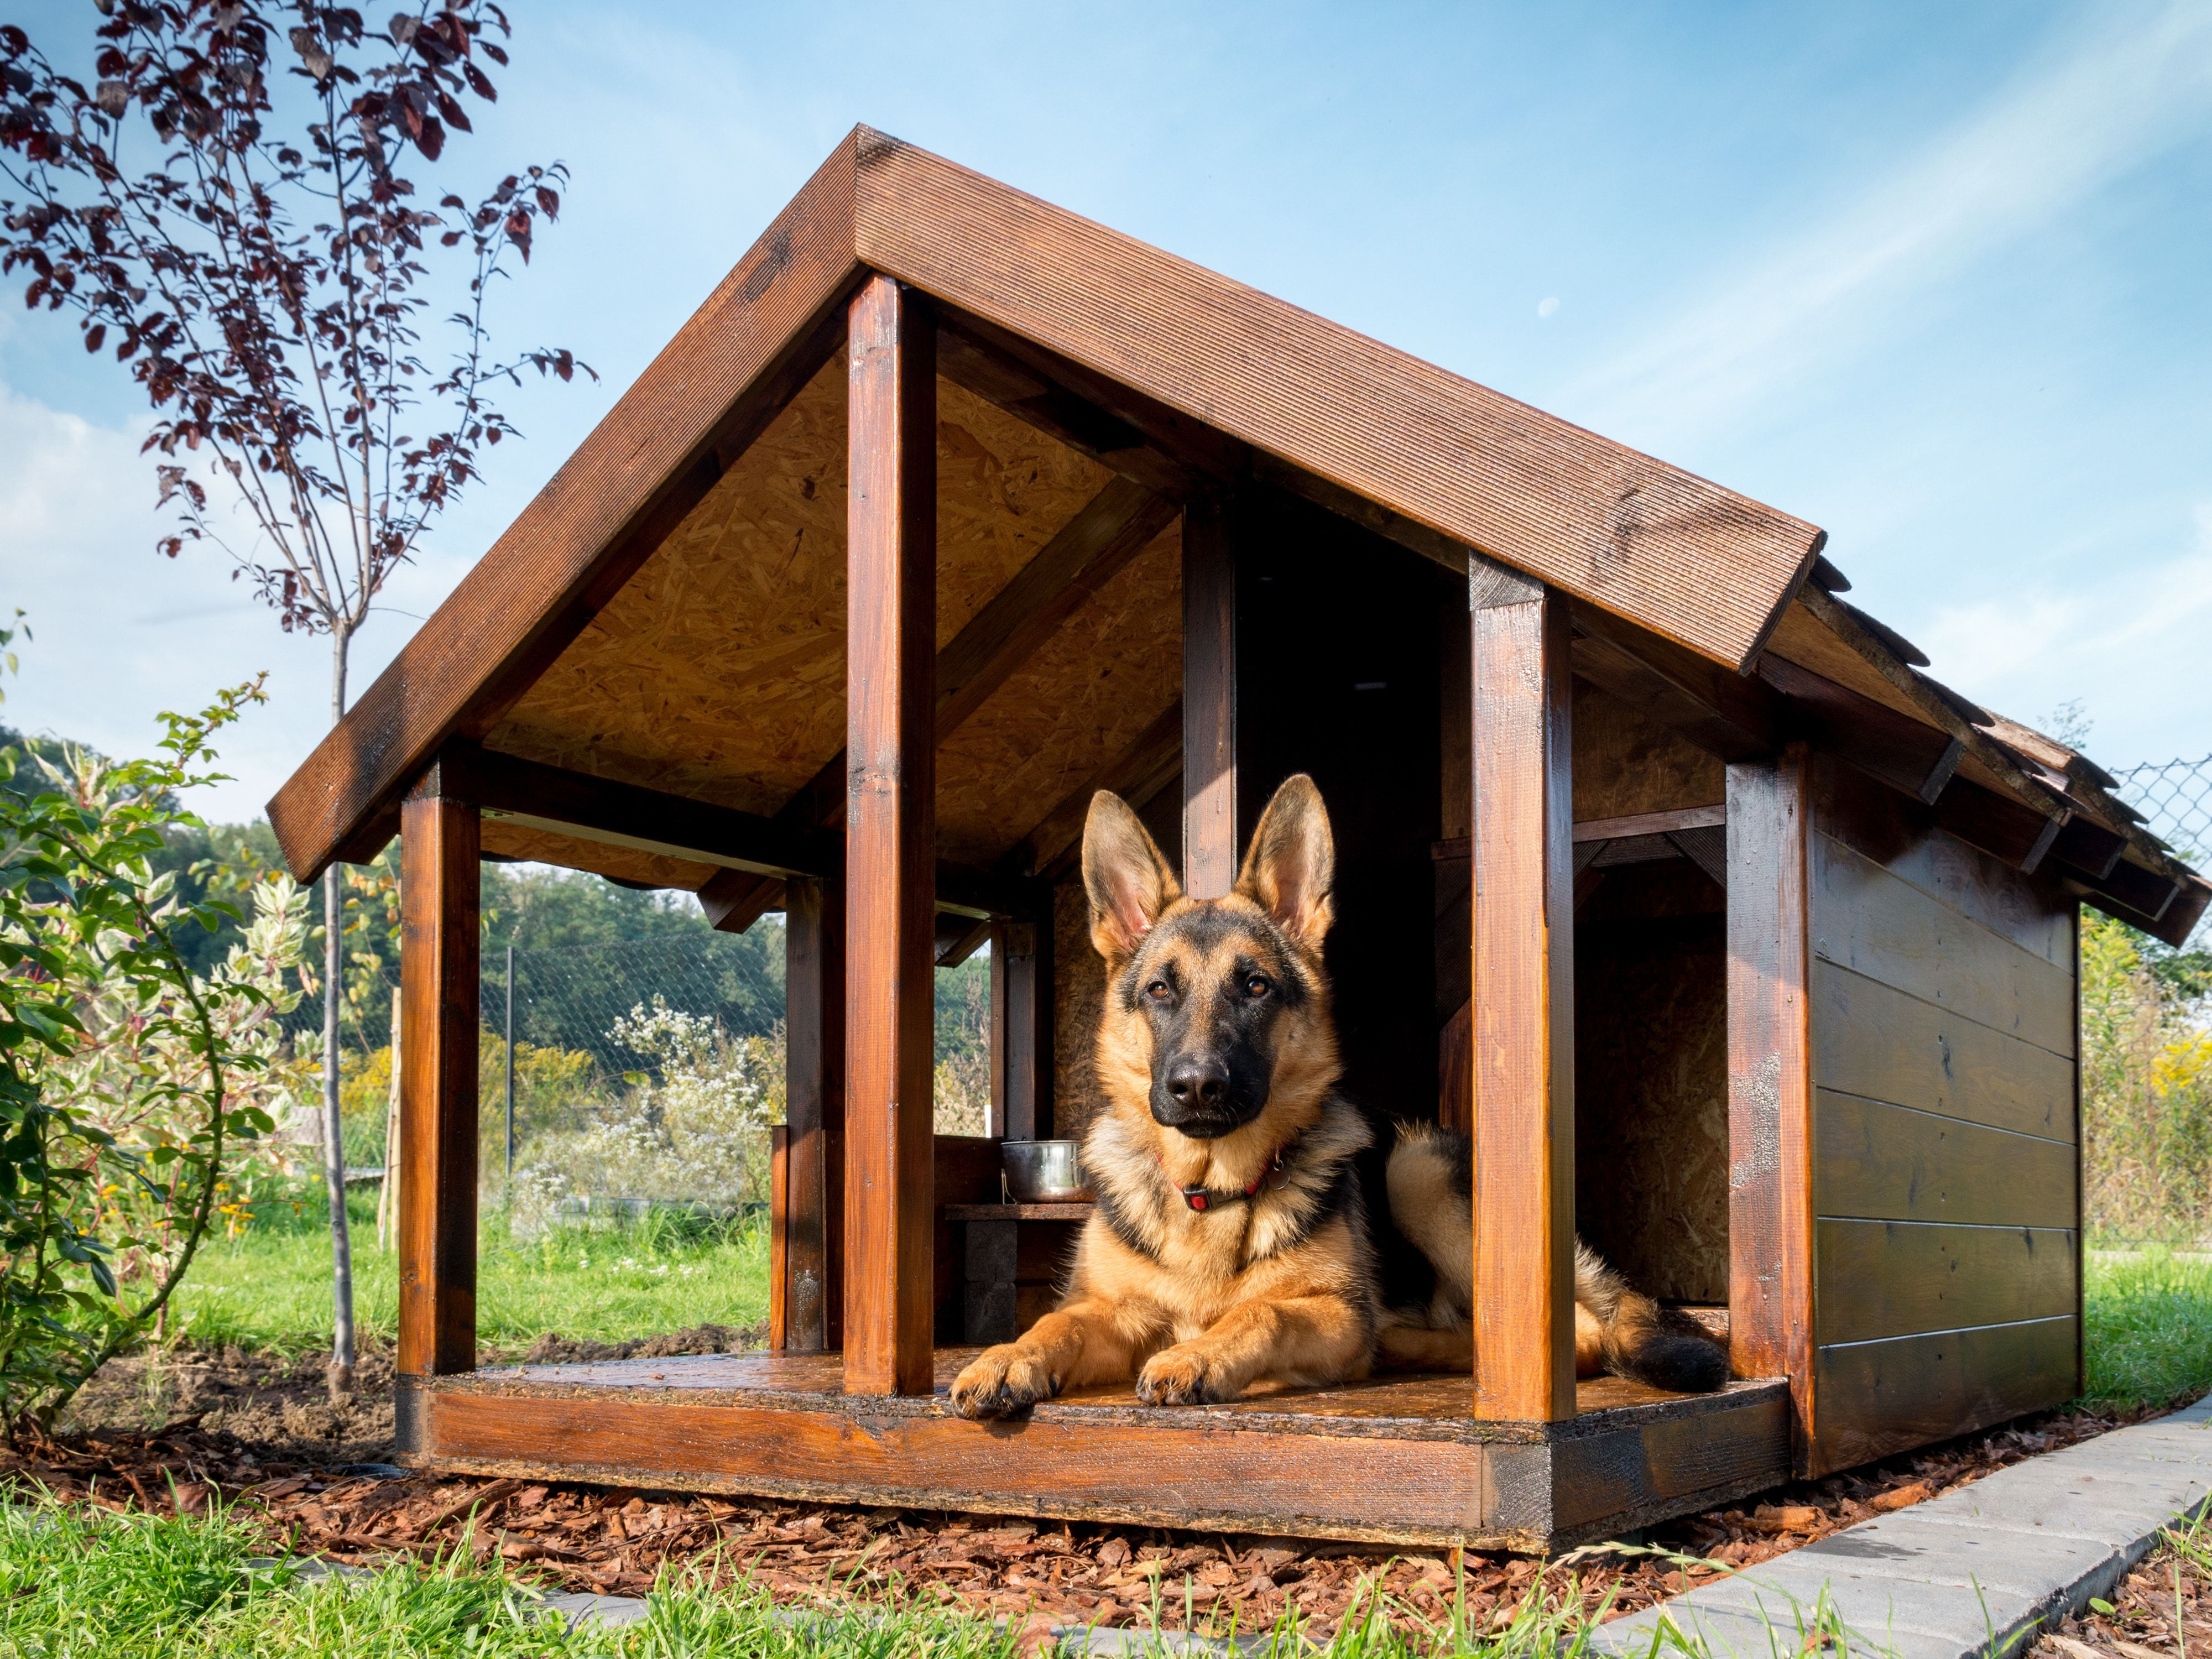 Dog House Ideas Puppies Cool Dog Houses Insulated Dog House